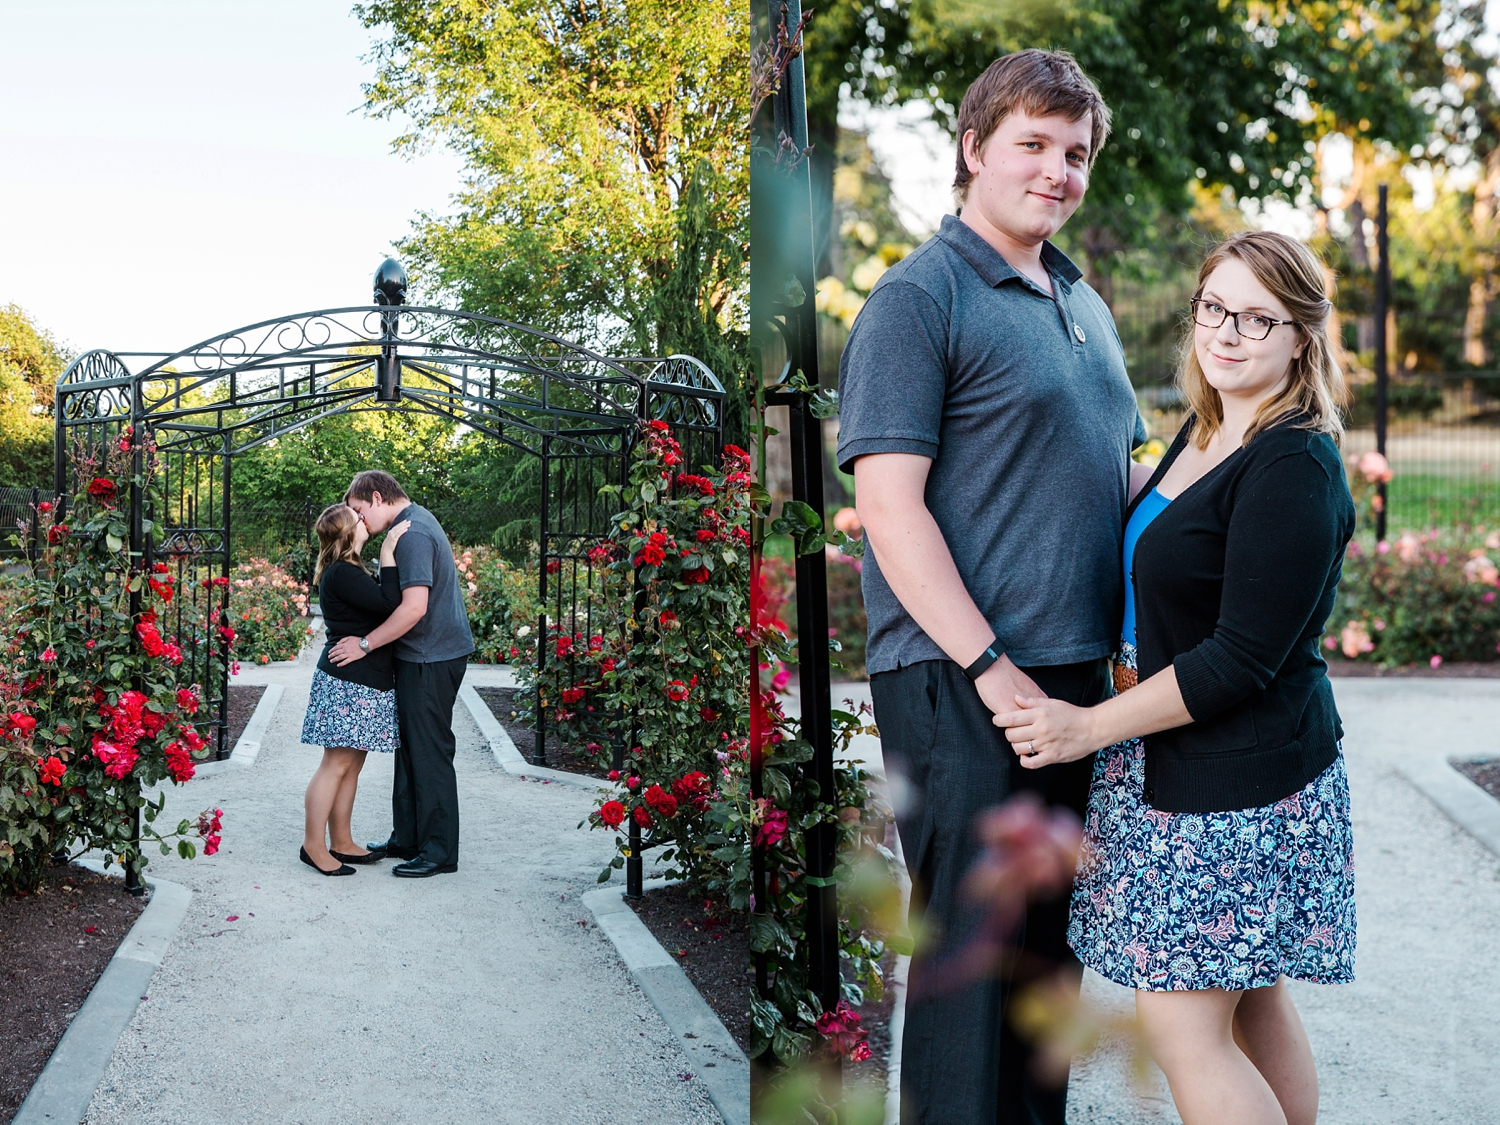 beaconhillpark-engagement_0005.jpg